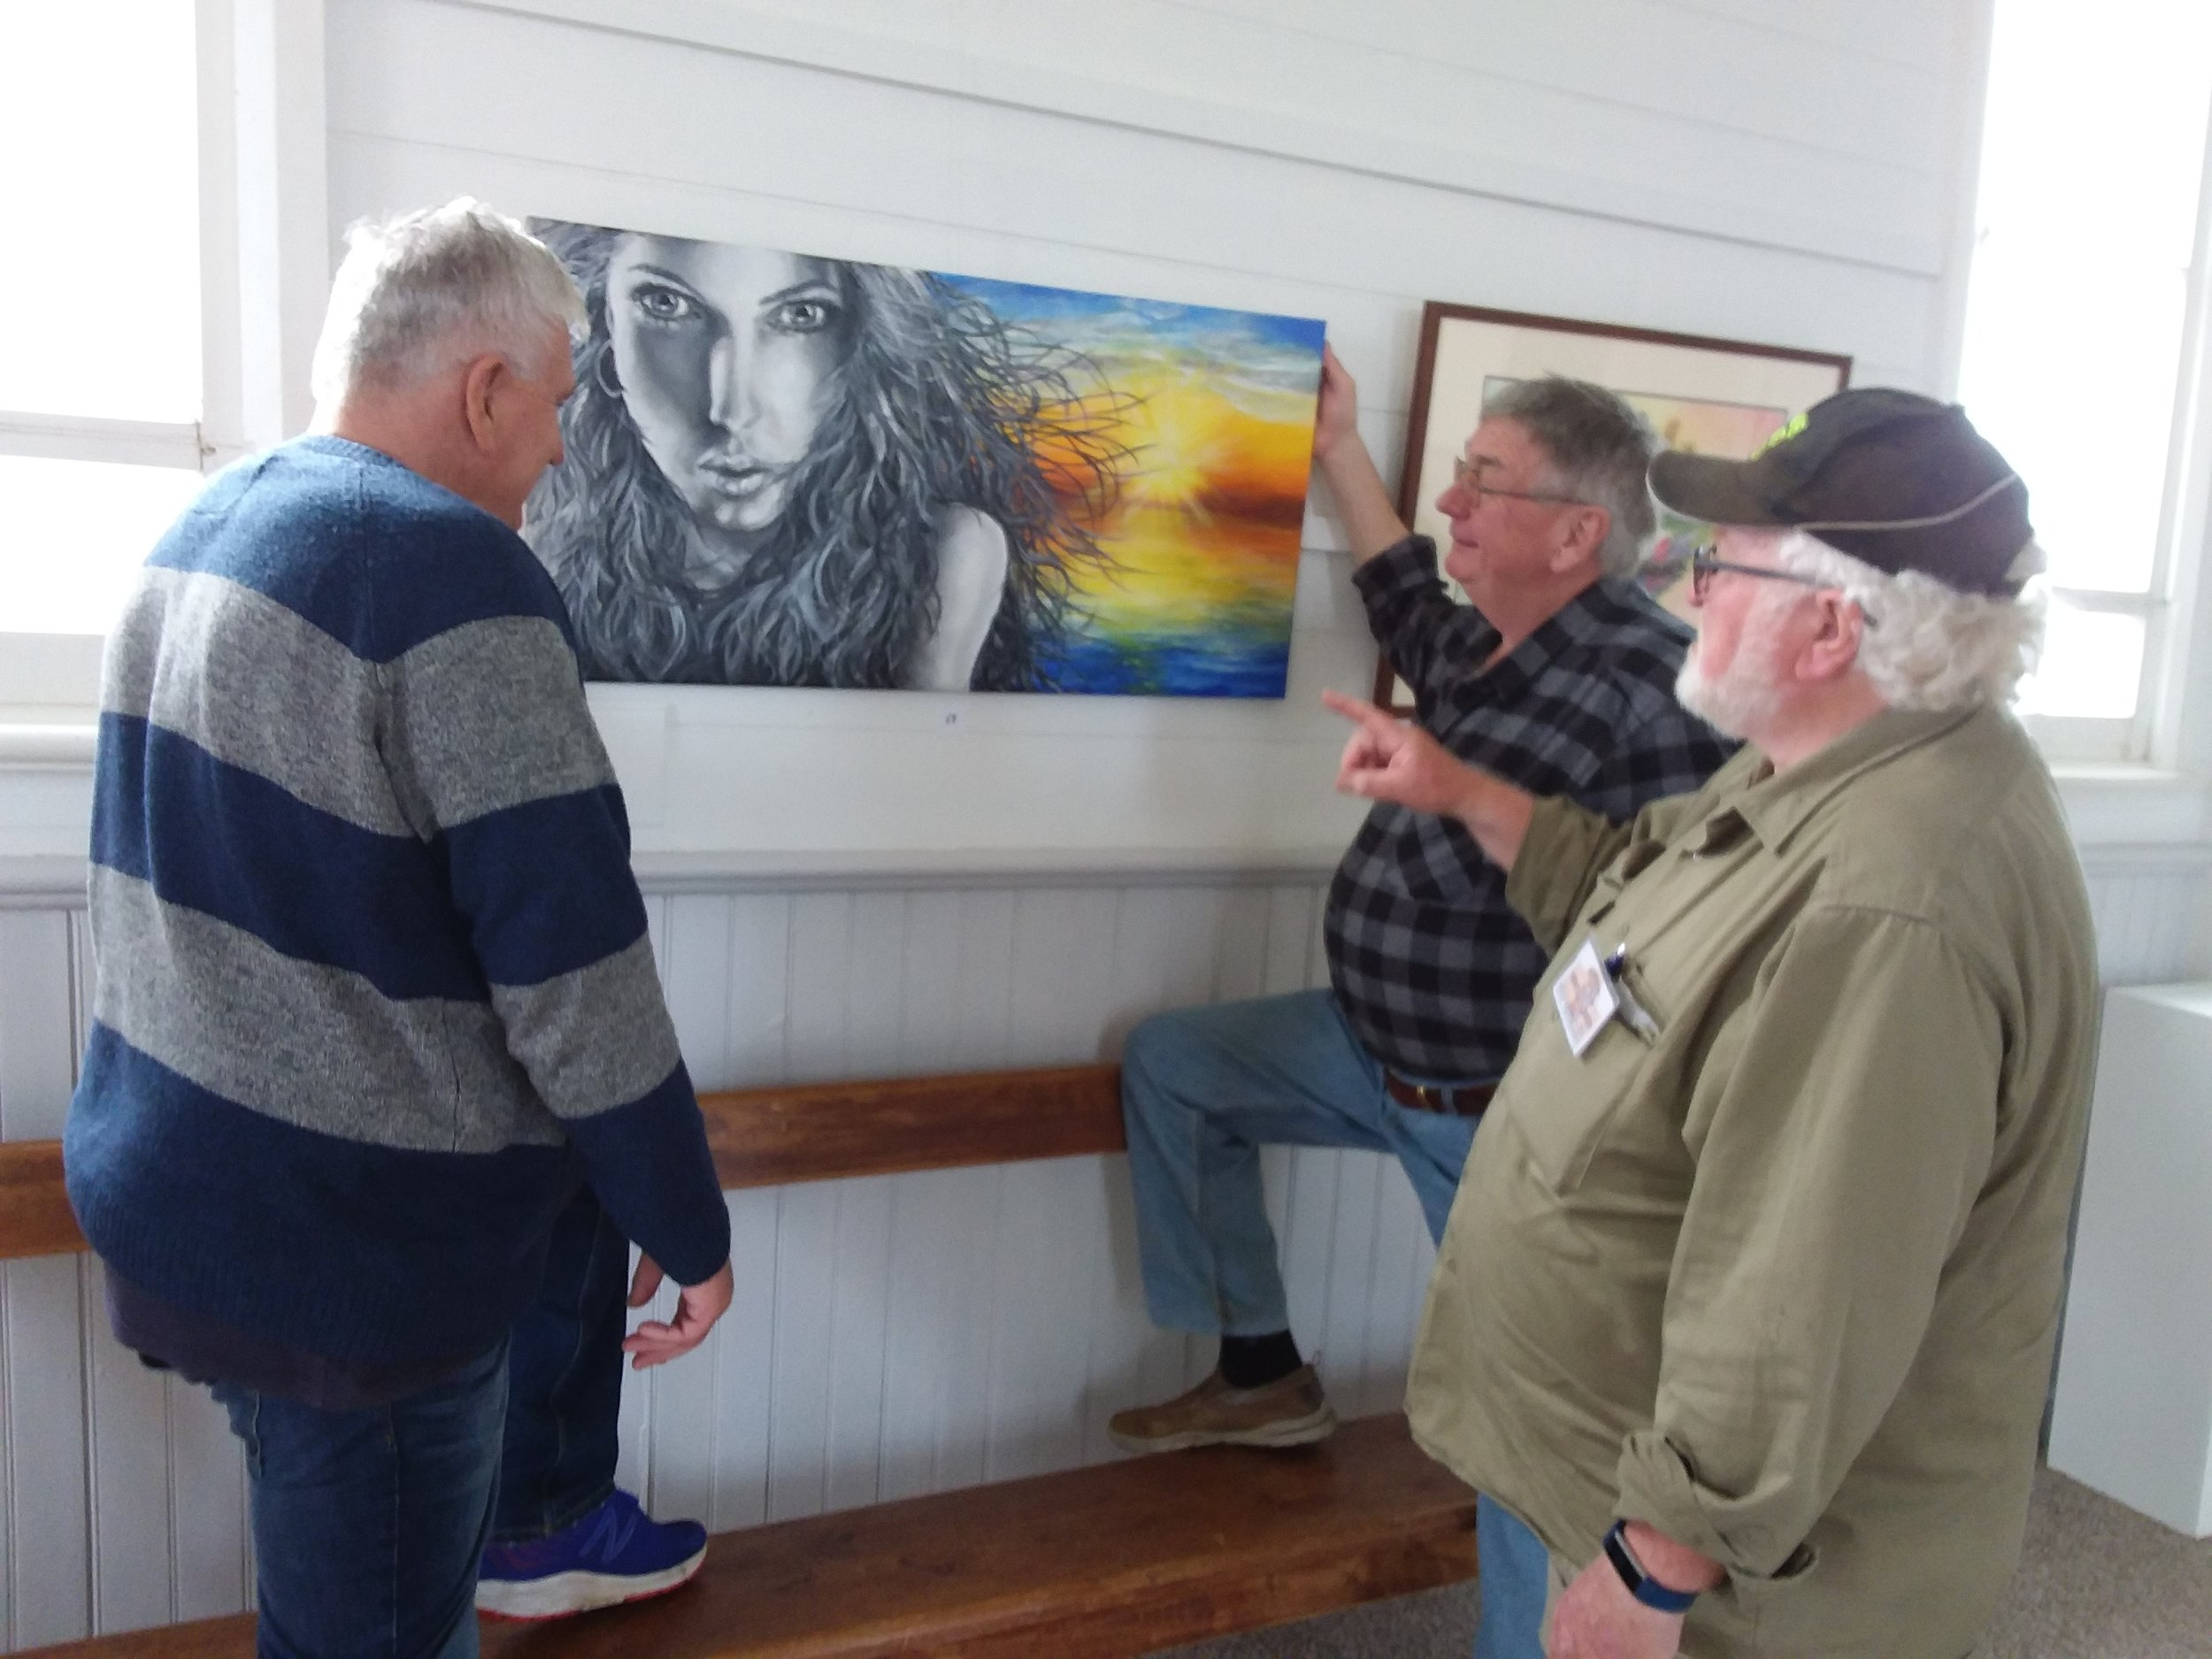 JOHN, RODNEY AND GEOFF FROM THE BURNIE AND SOMERSET MENS SHED HELPED HANG UPTOWN ART